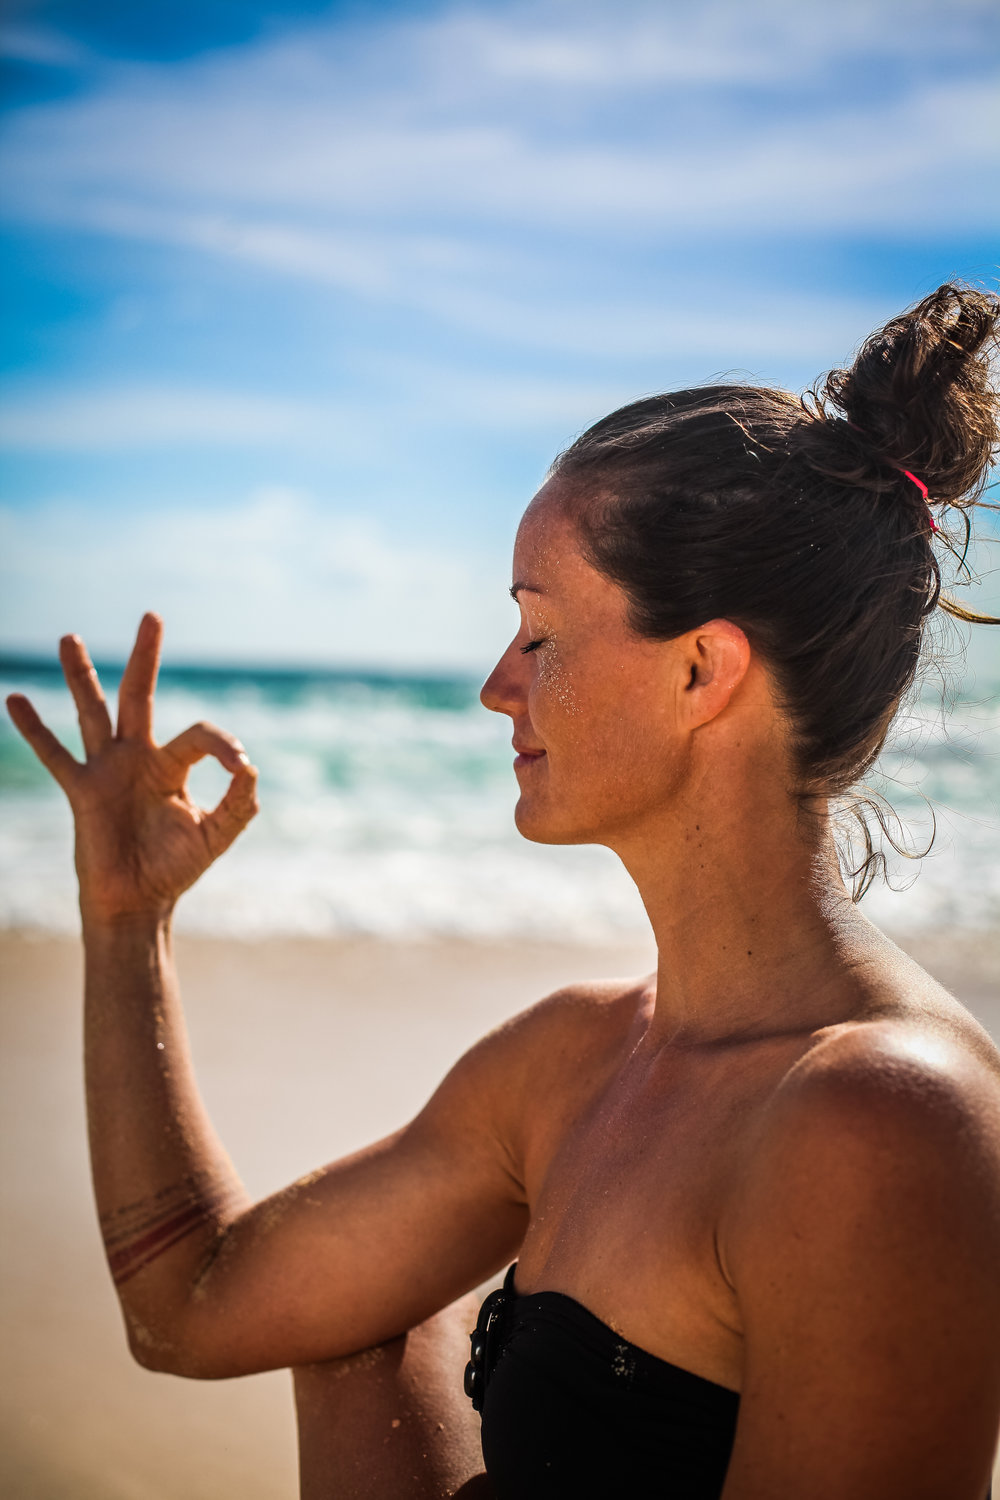 Re-program your mind and lifewith yoga, meditation, mental training, an active lifestyle and healthy habits. - Looking for a way to improve your life and increase the feeling of freedom and happiness in your life, but not quite sure where to start?